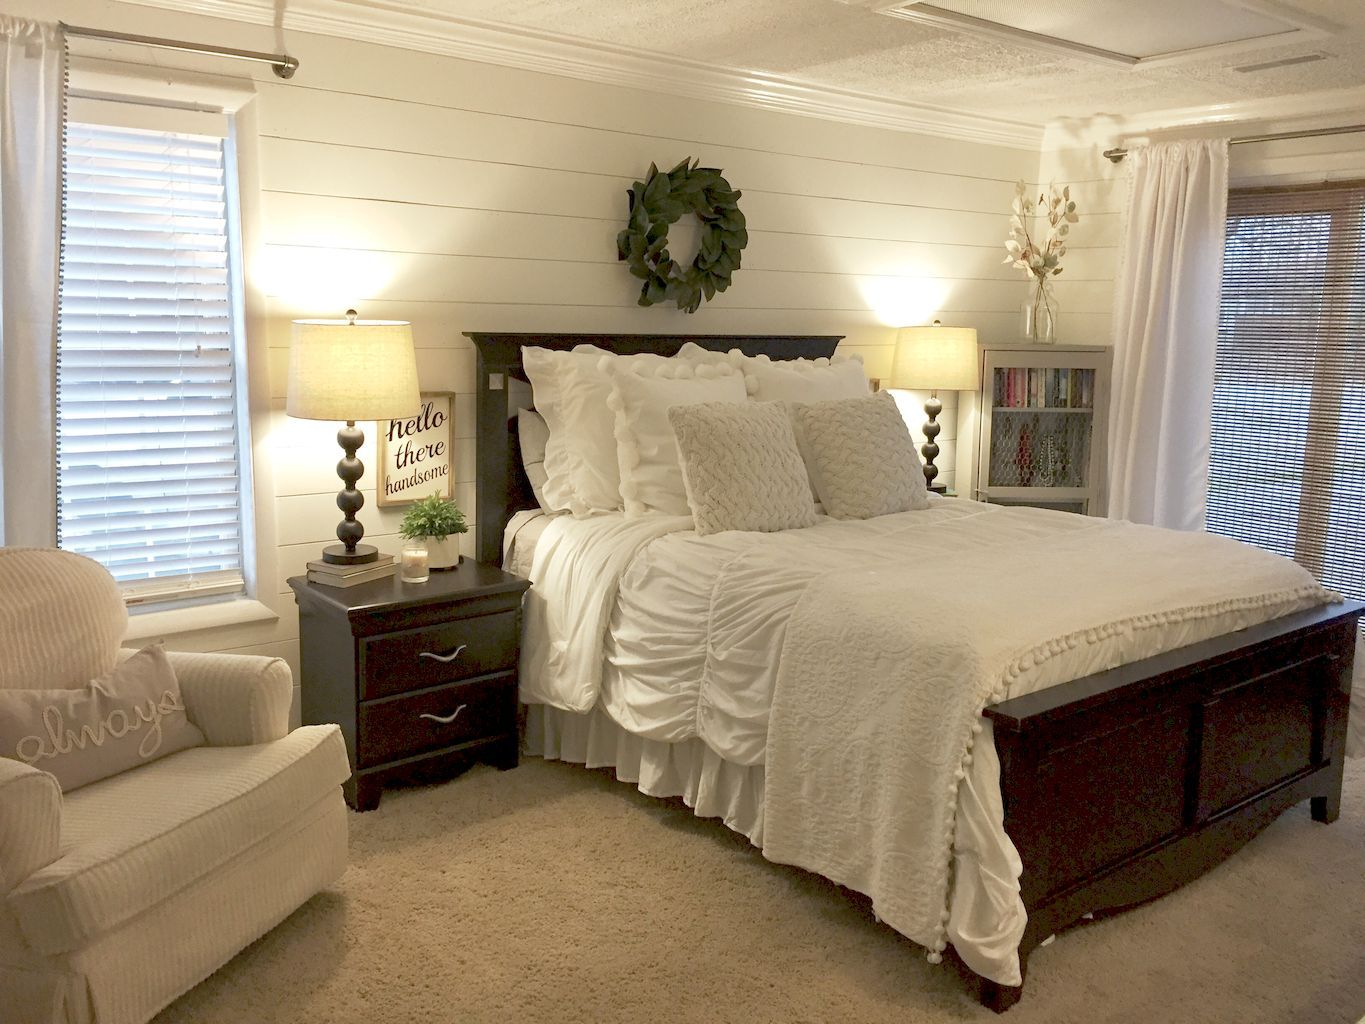 Stunning 60 Farmhouse Style Master Bedroom Decoration Ideas  Https://insidecorate.com/